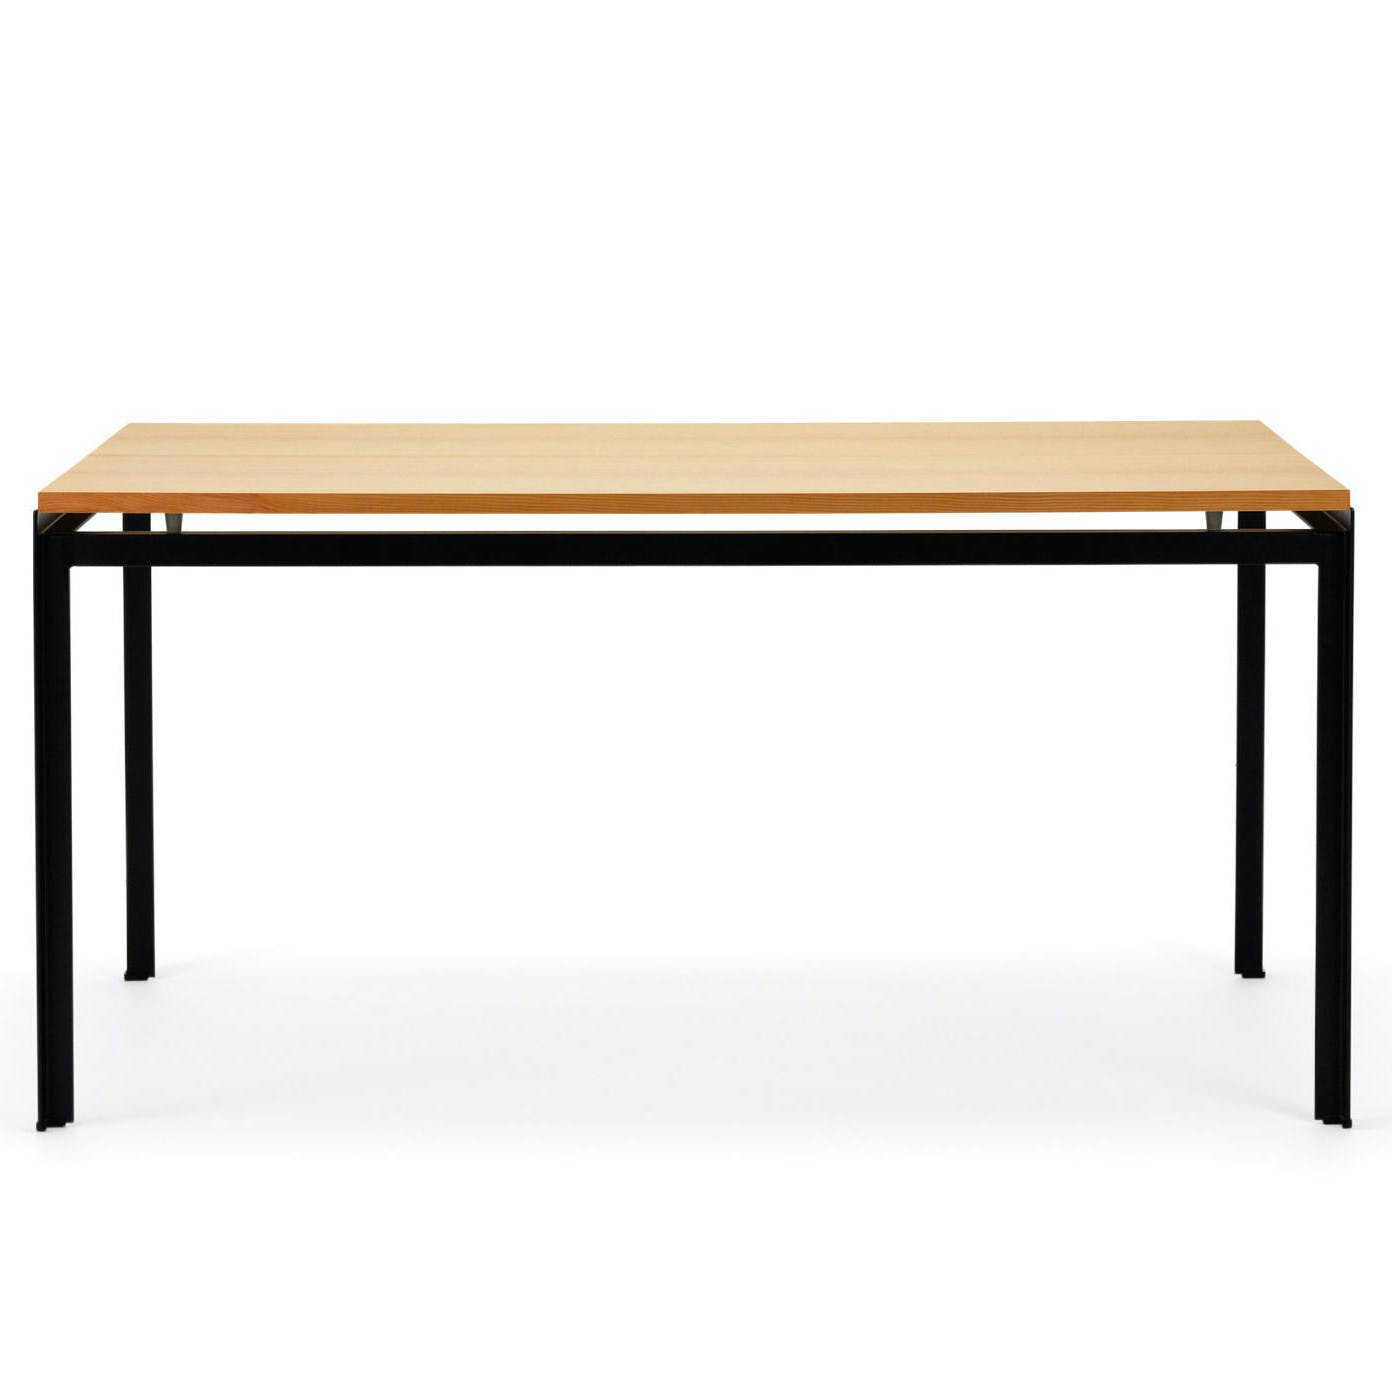 Carl-hansen-pk-52-desk-haute-living